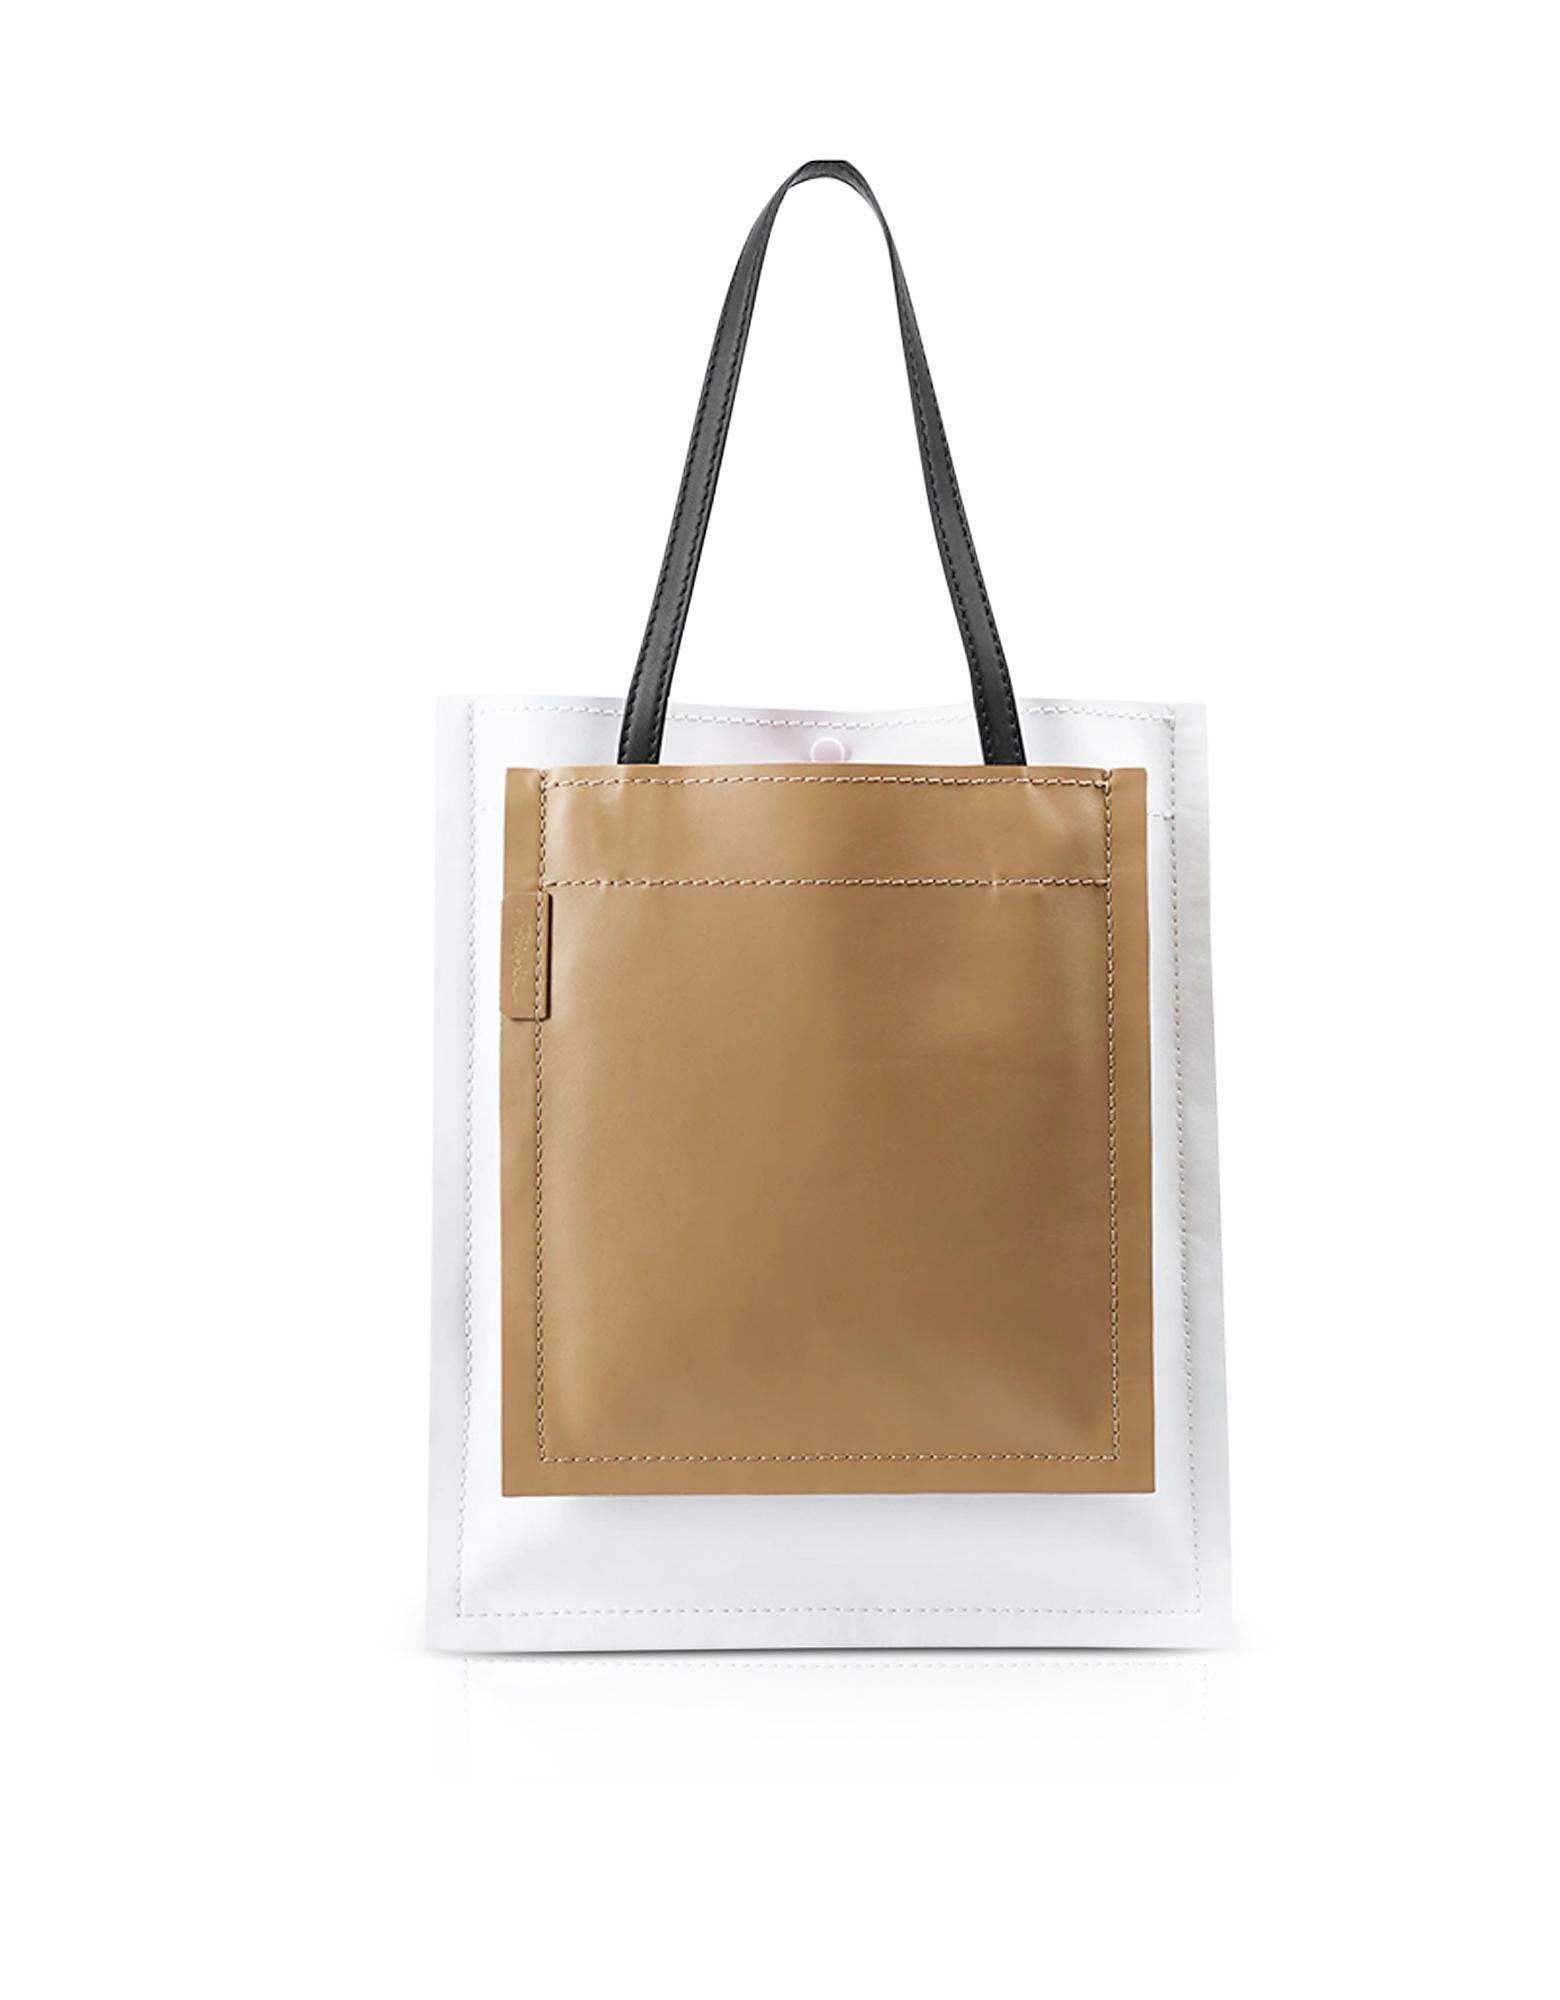 3.1 Phillip Lim Handbags, Slim Accordion Natural Leather Tote Bag